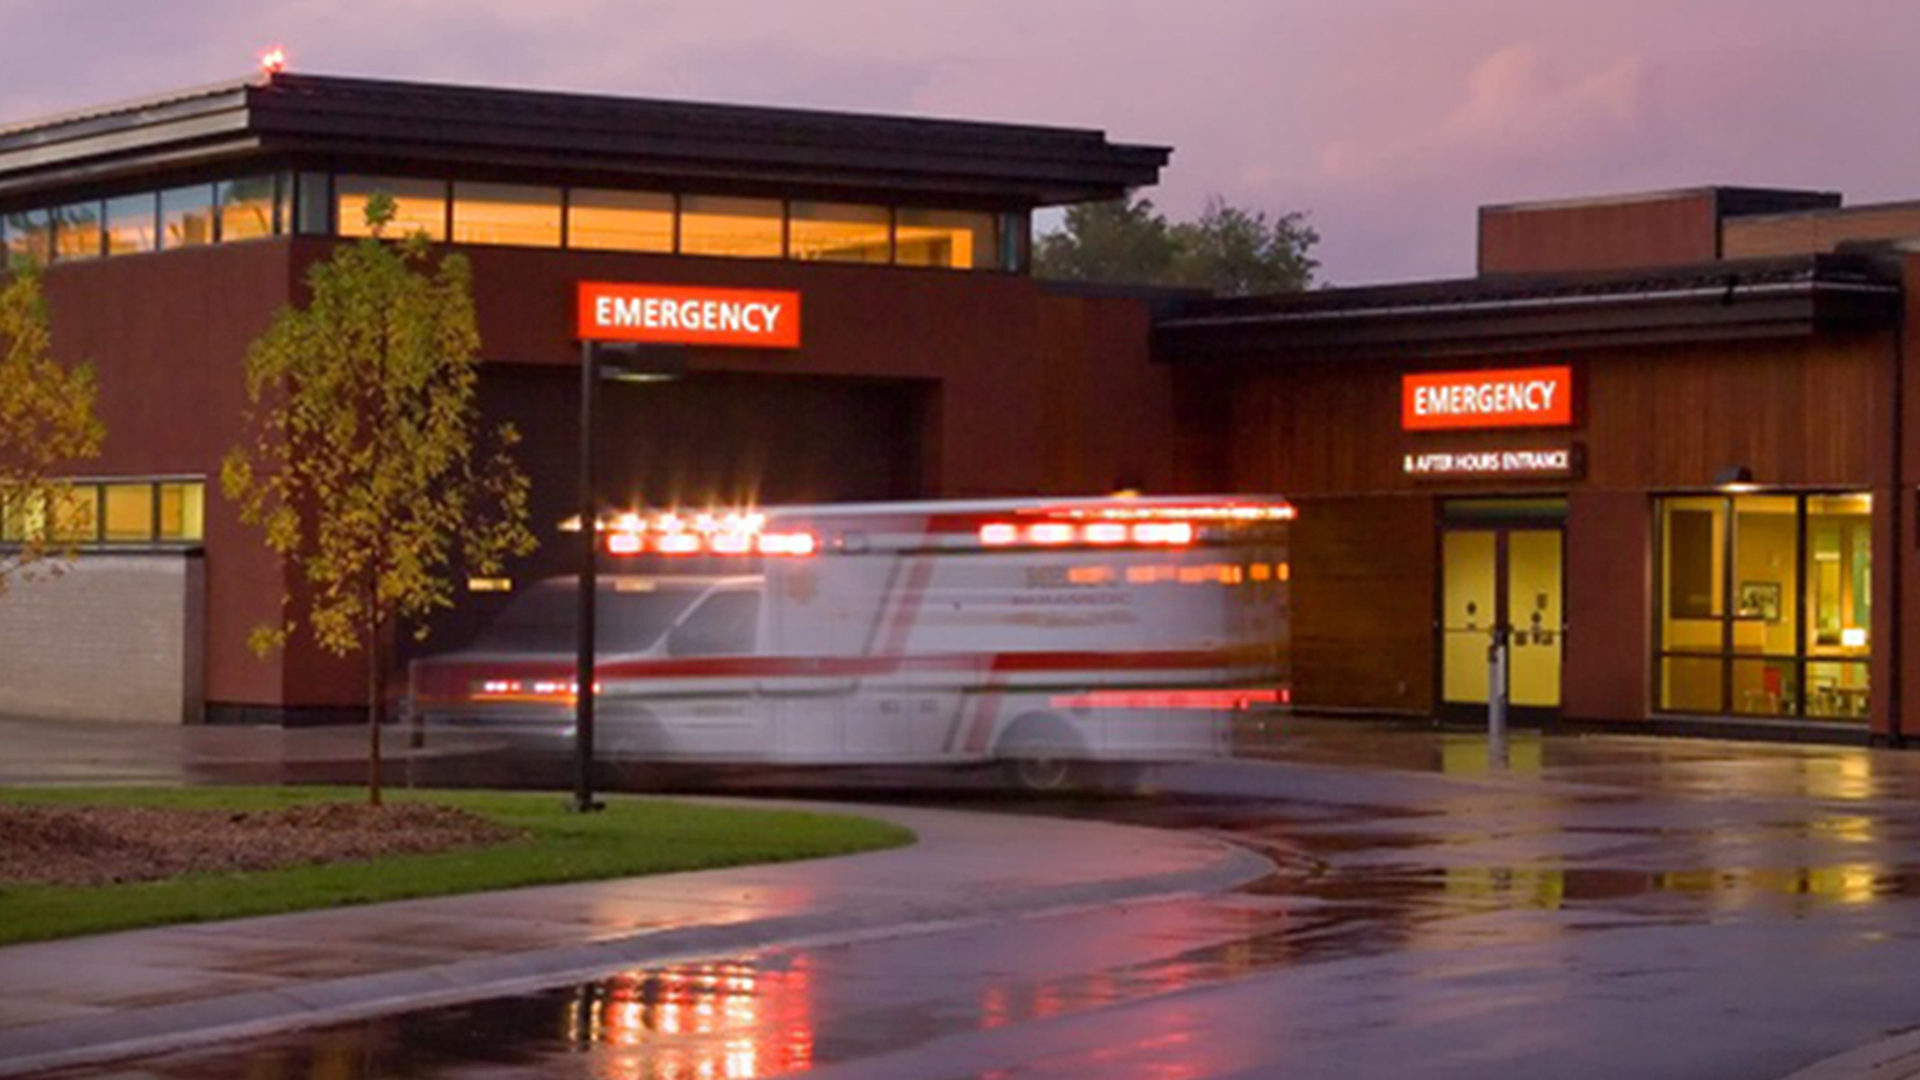 Grand Itasca Clinic & Hospital Night Exterior View of Emergency Entrance with Ambulance